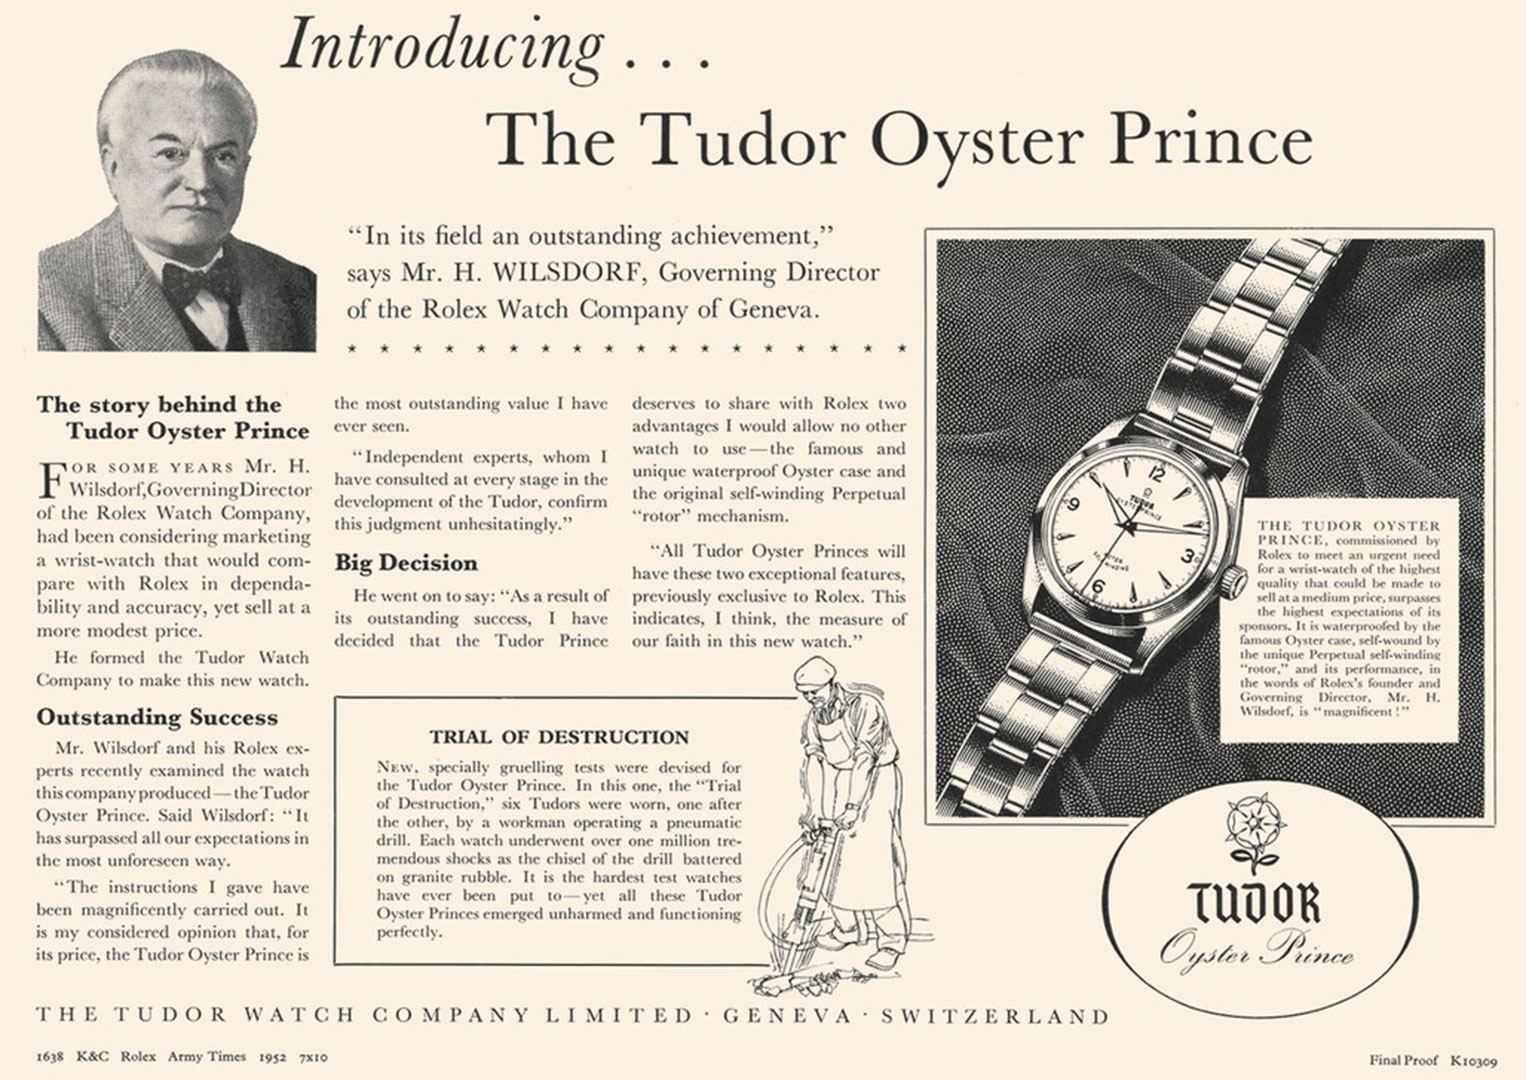 An early Tudor advert mentioning Rolex